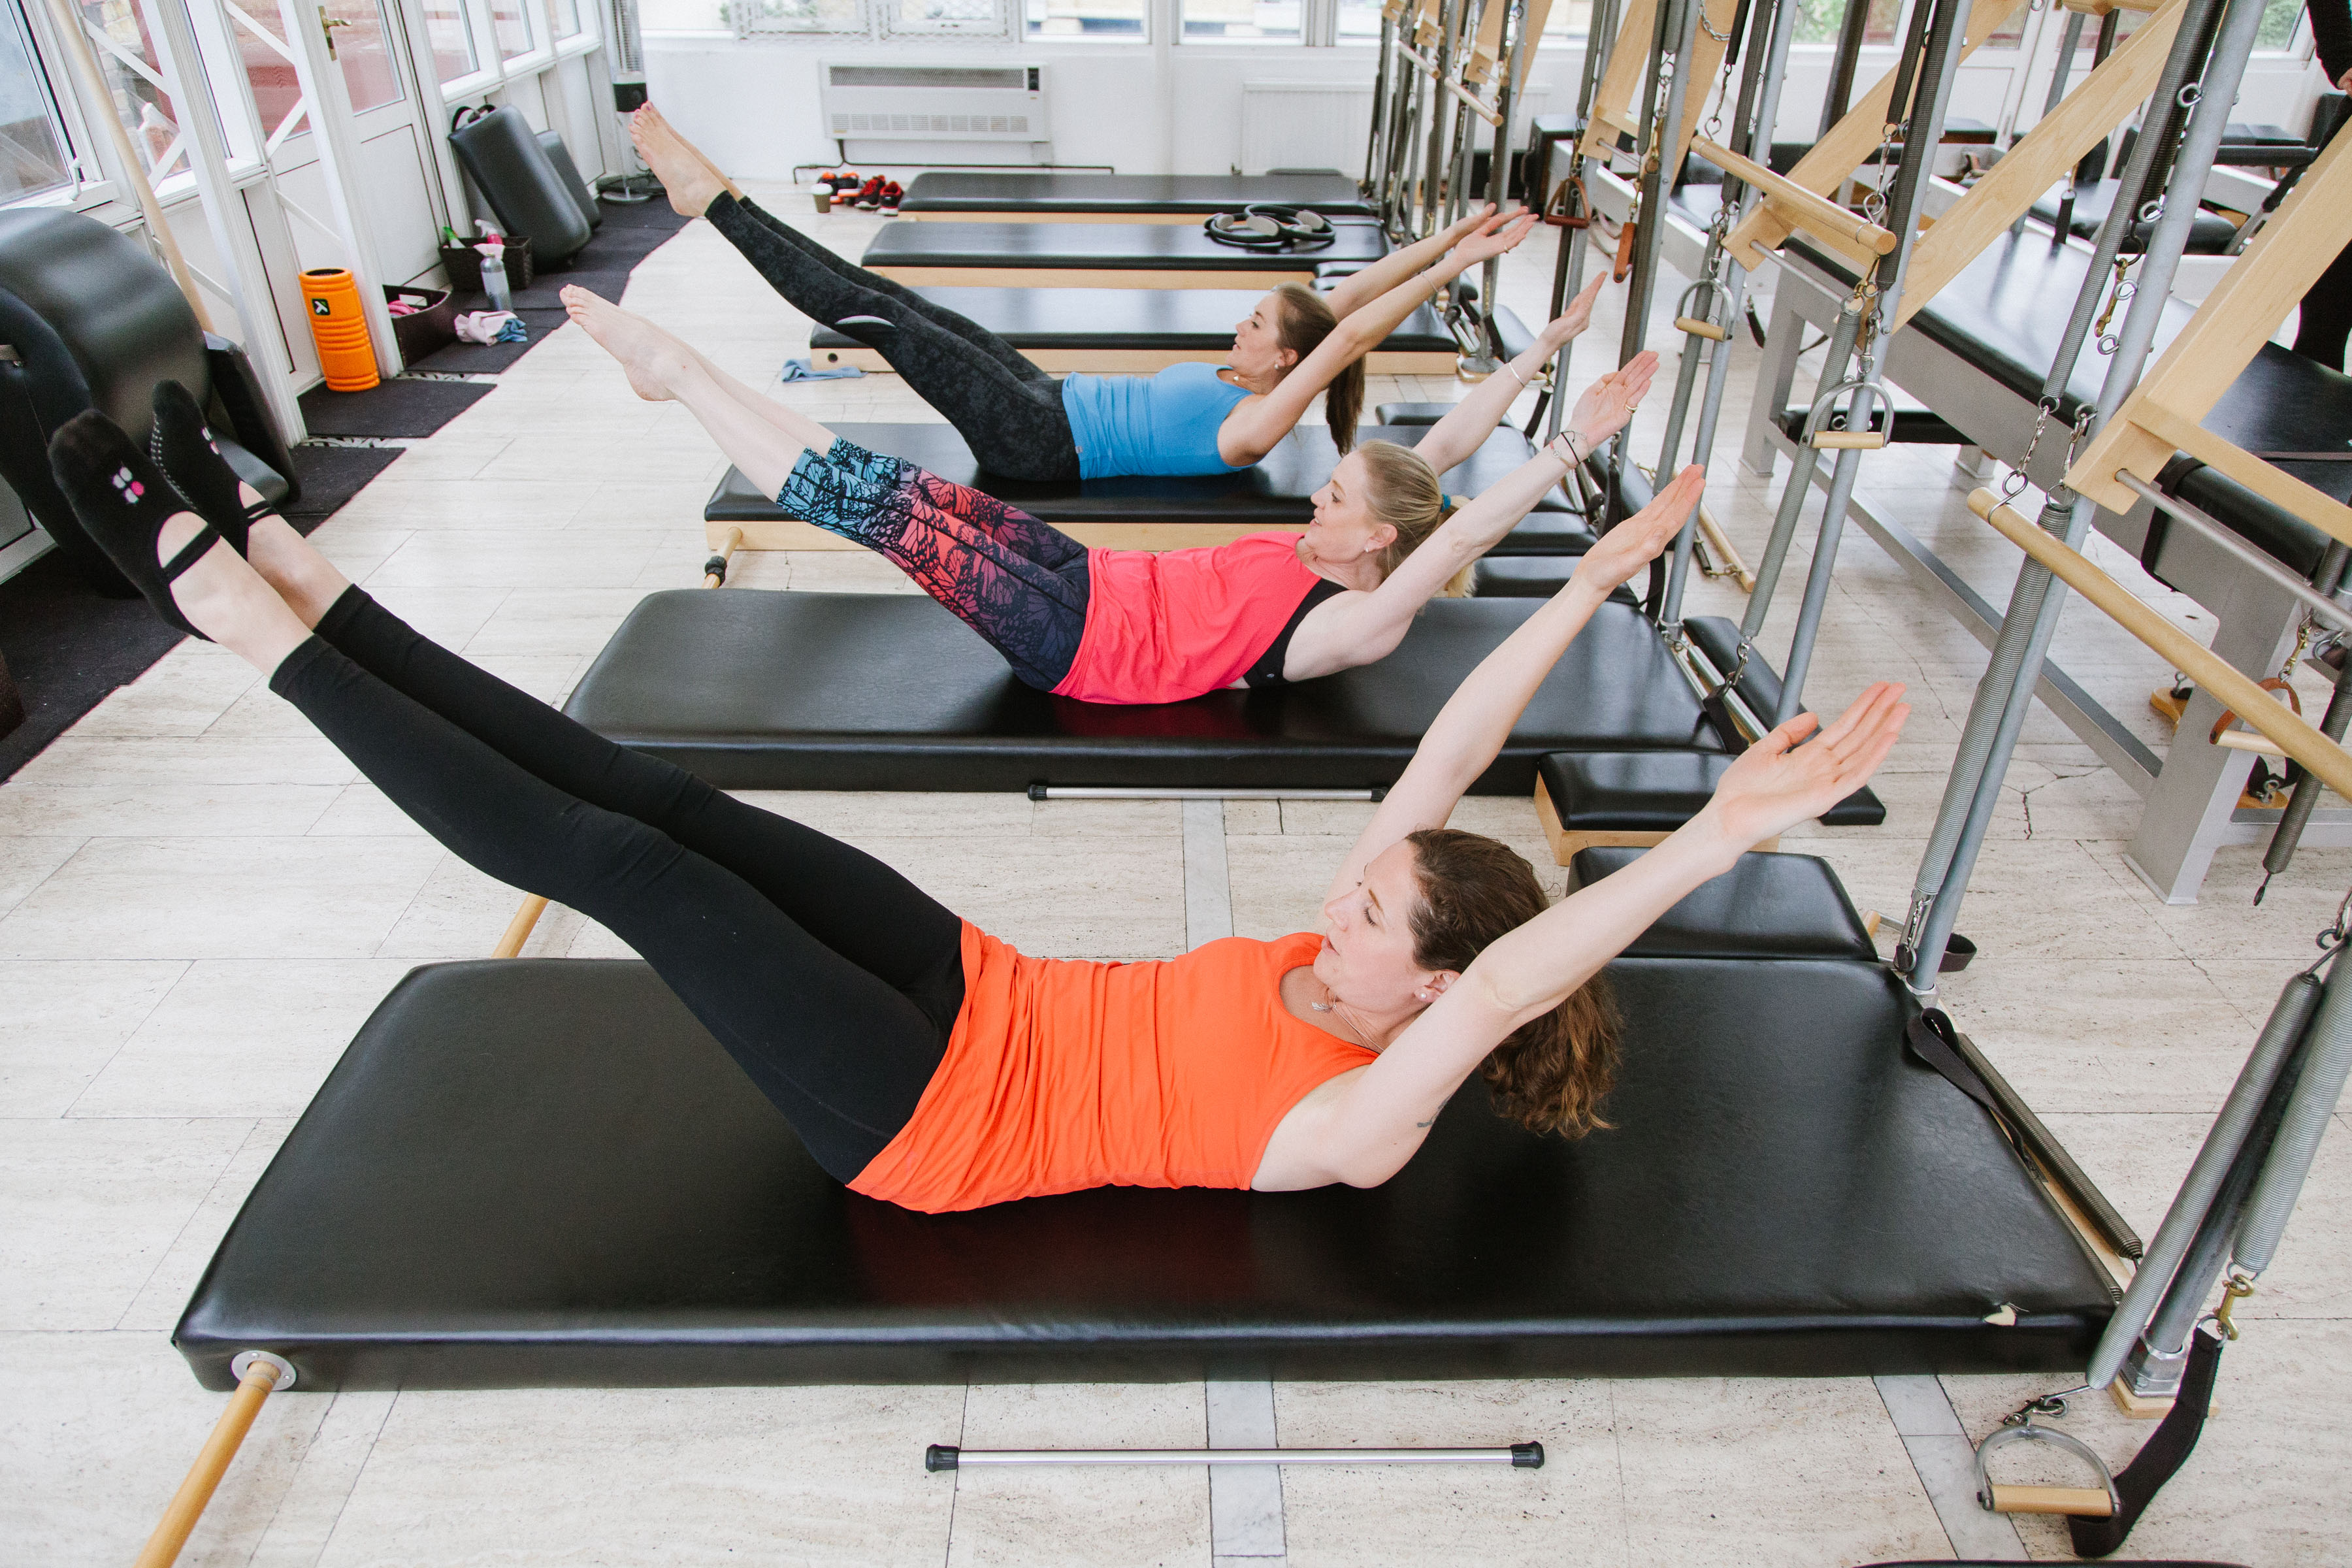 3 women on pilates equipment in Cirencester